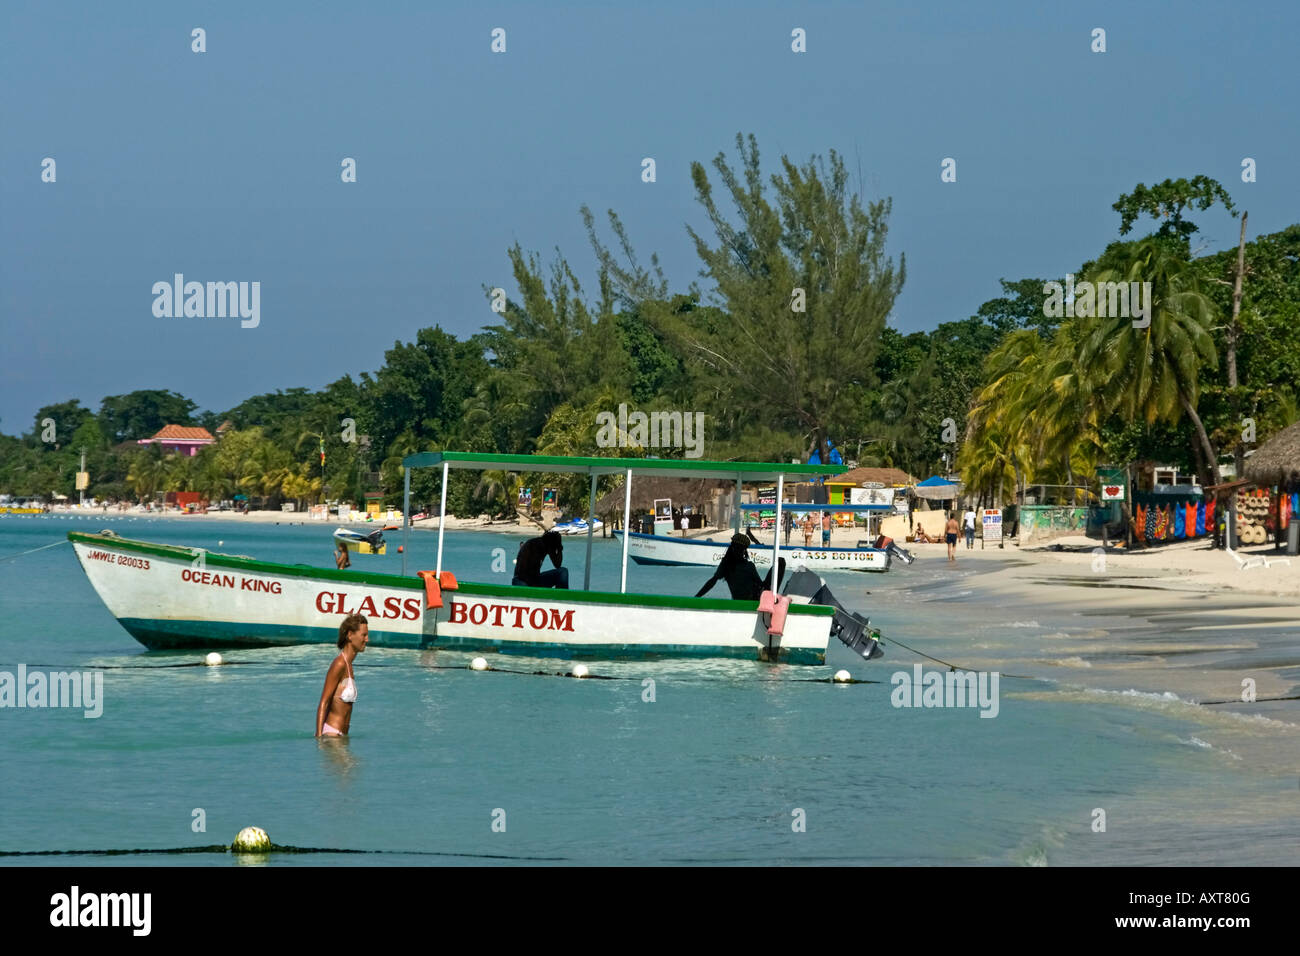 Jamaica Negril beach glass bottom boat Stock Photo